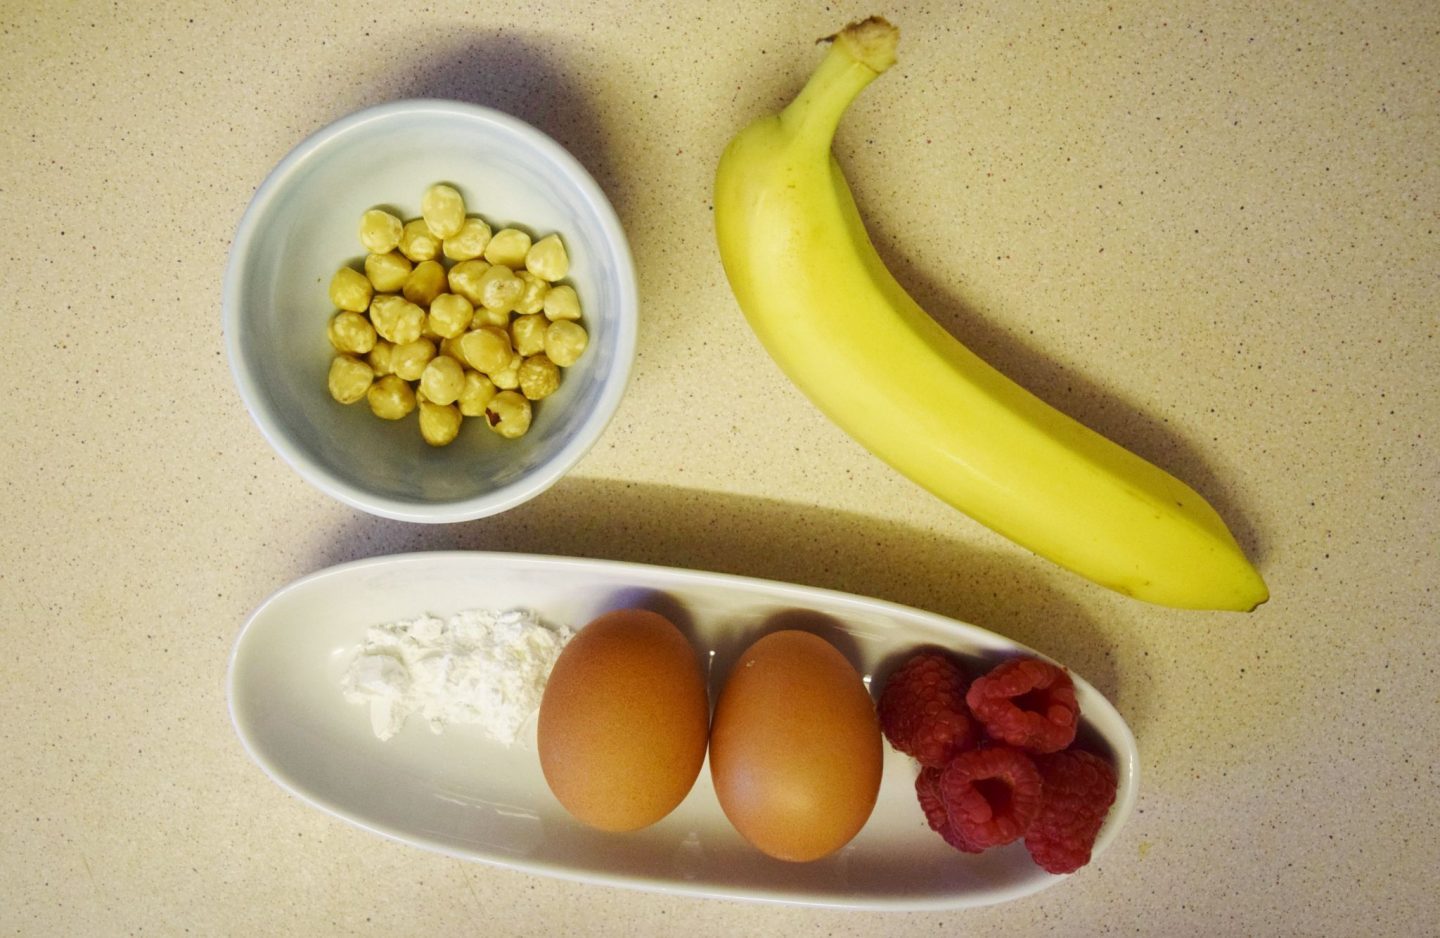 banana pancake ingredients